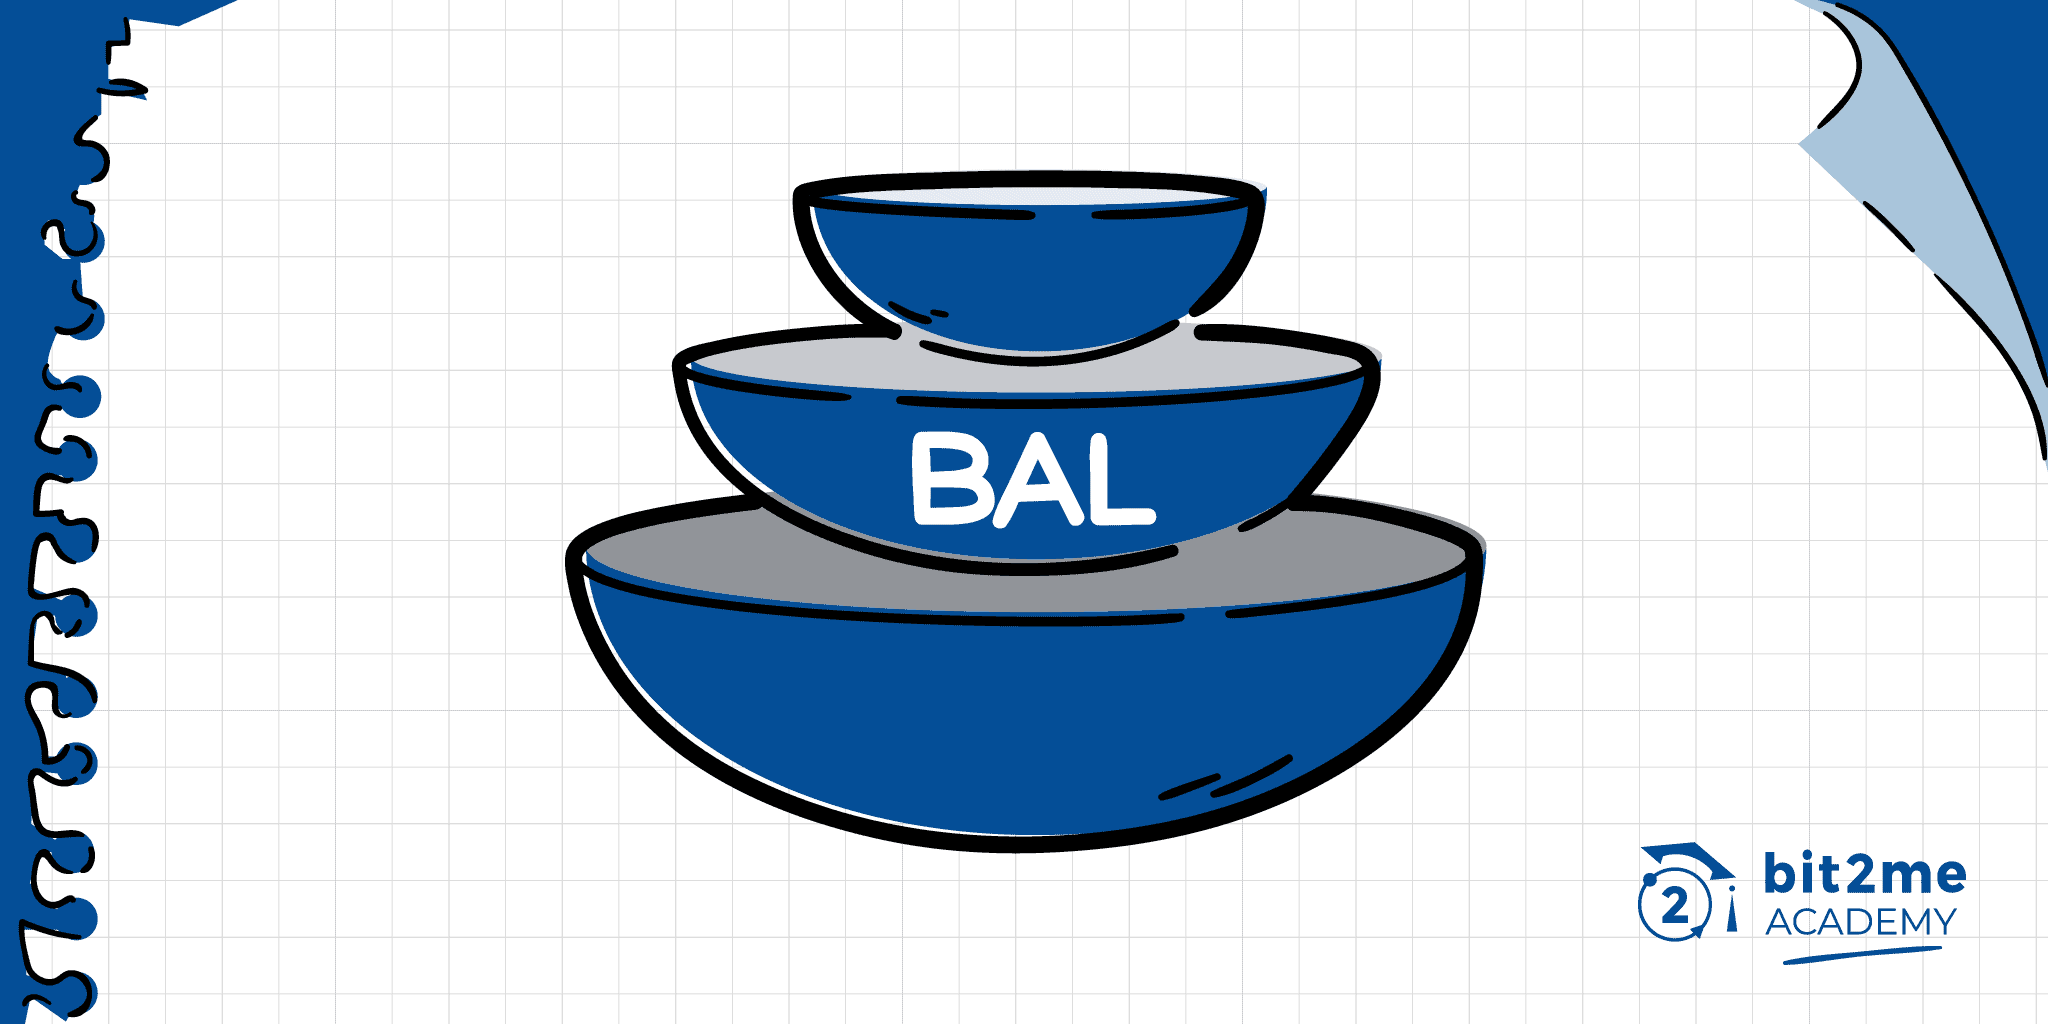 Qué es Balancer (BAL), Balancer pools, Balancer DEX